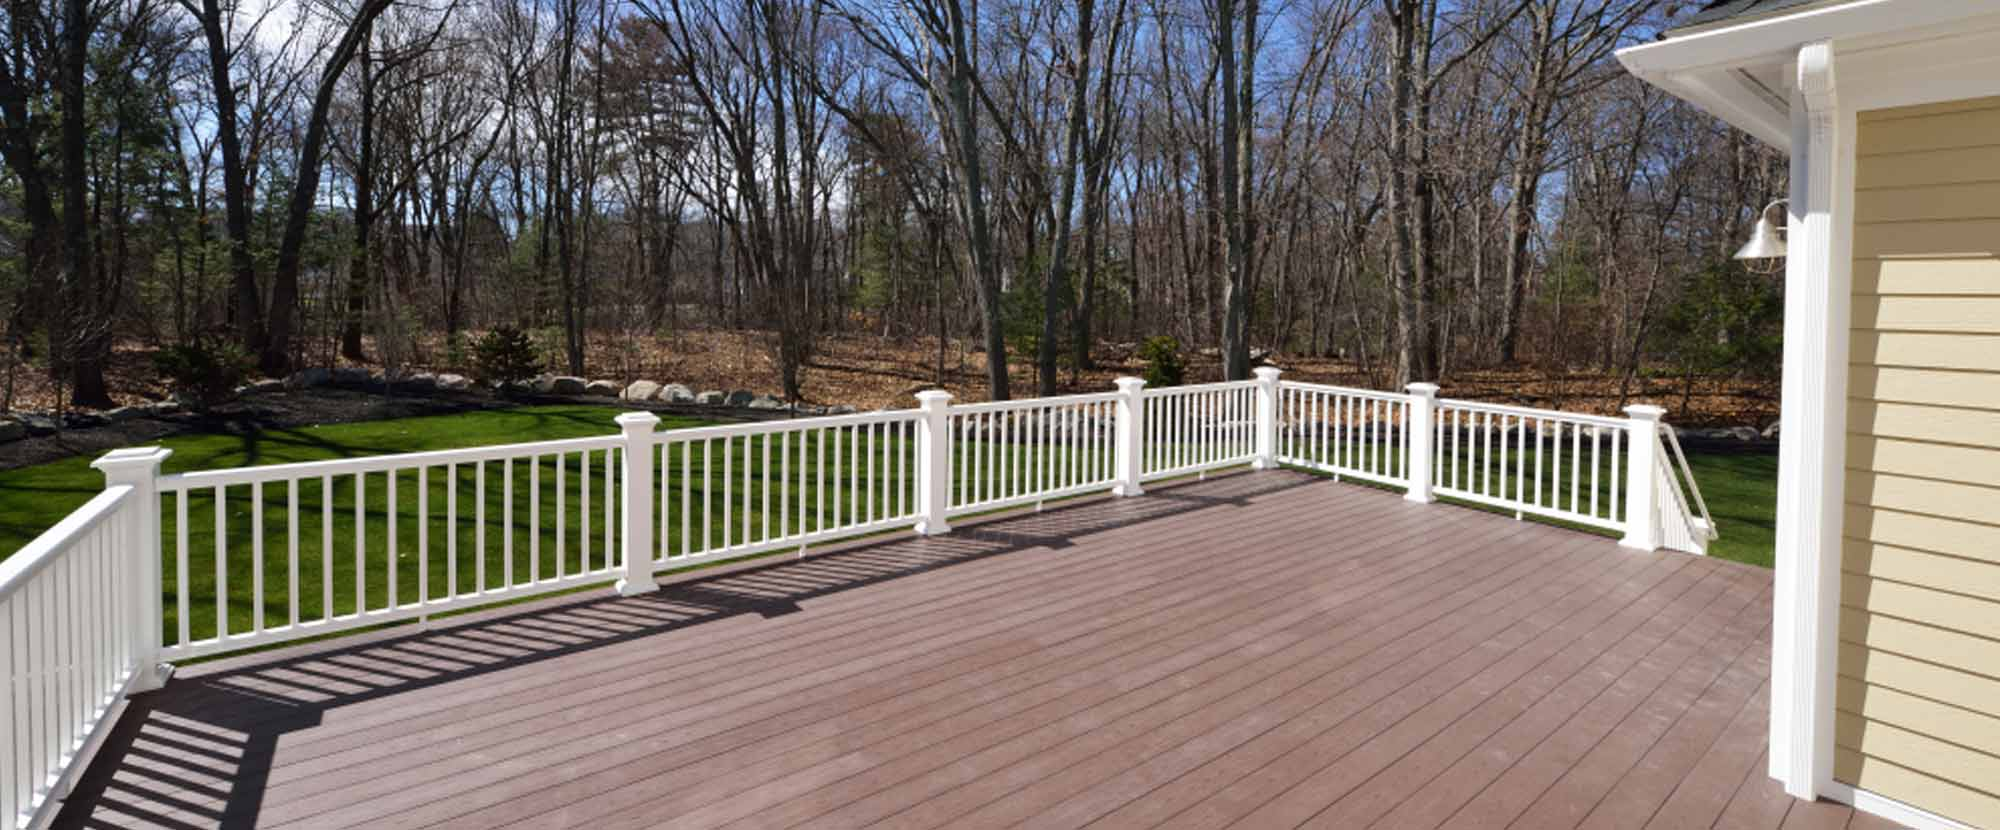 We do decks. Sub-headline: Give us a call to learn more!